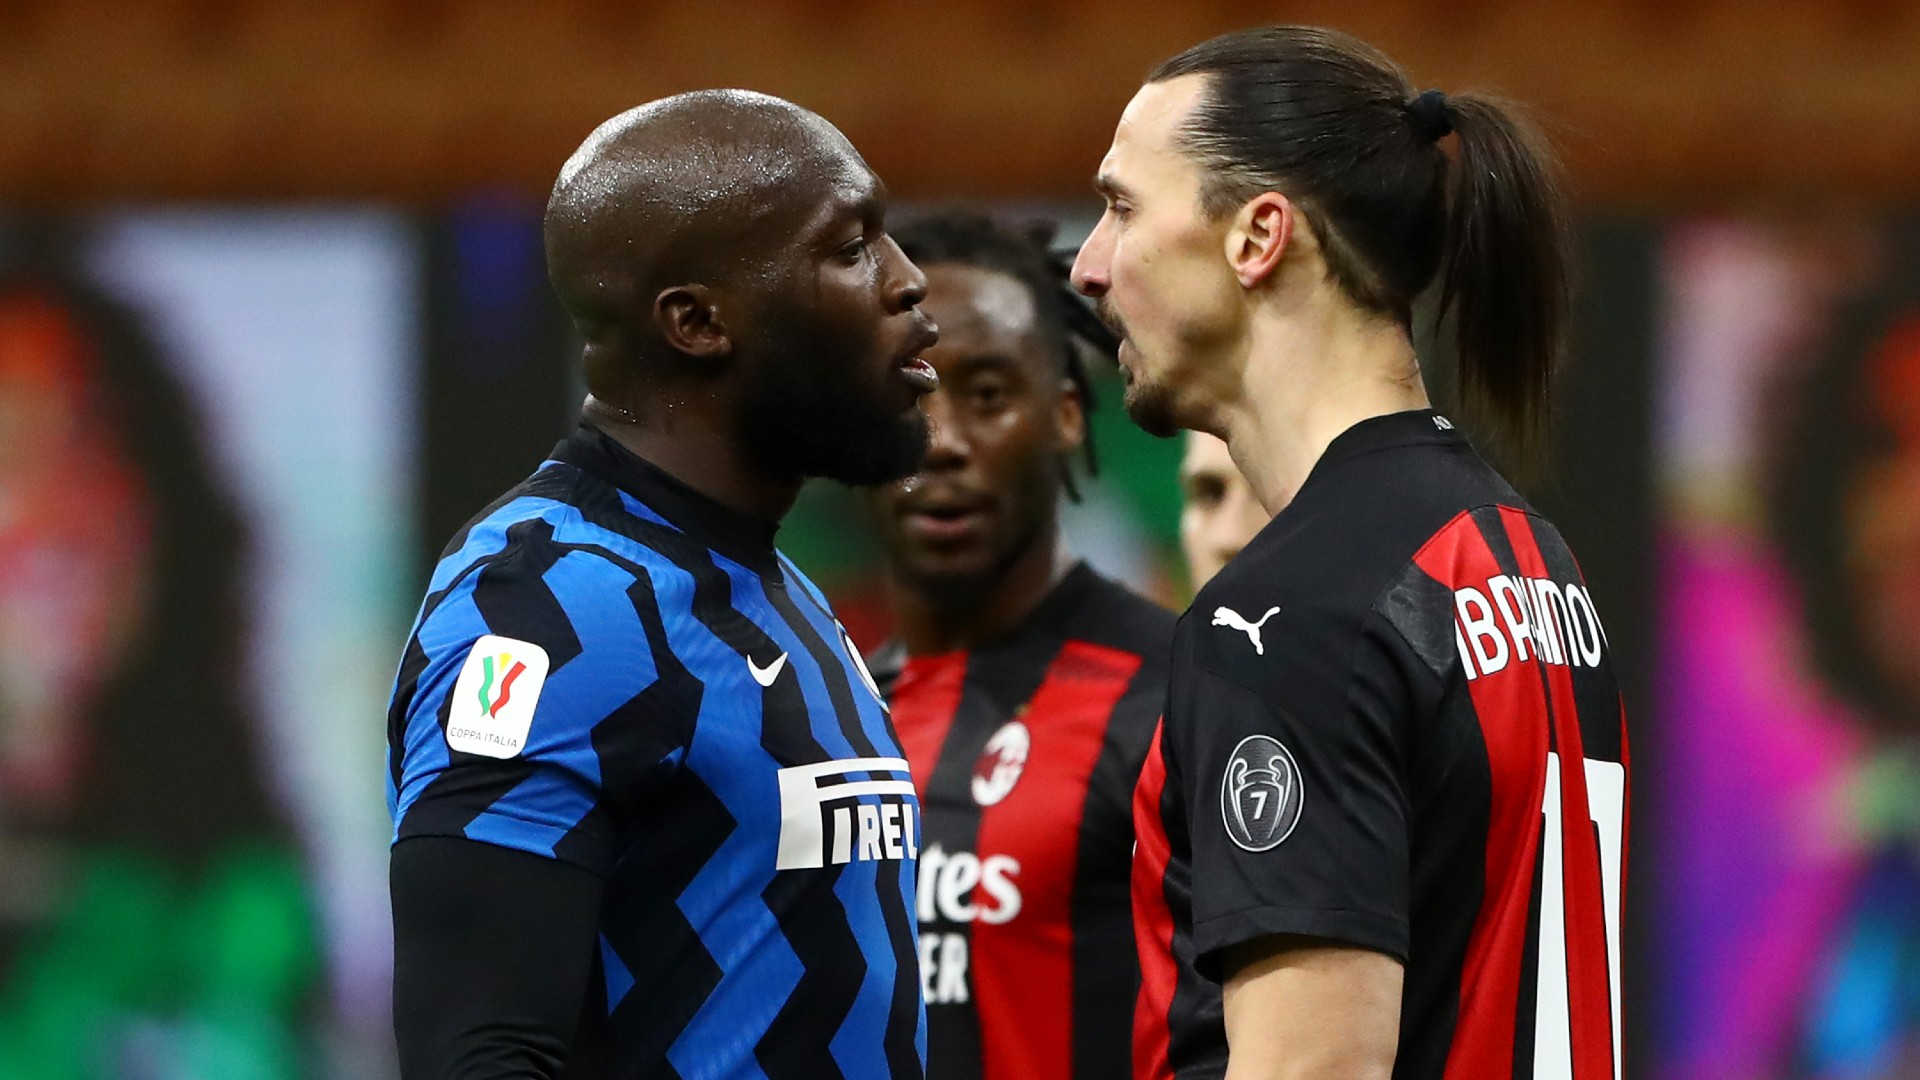 Zlatan Ibrahimovic denounces racism after spat with Lukaku